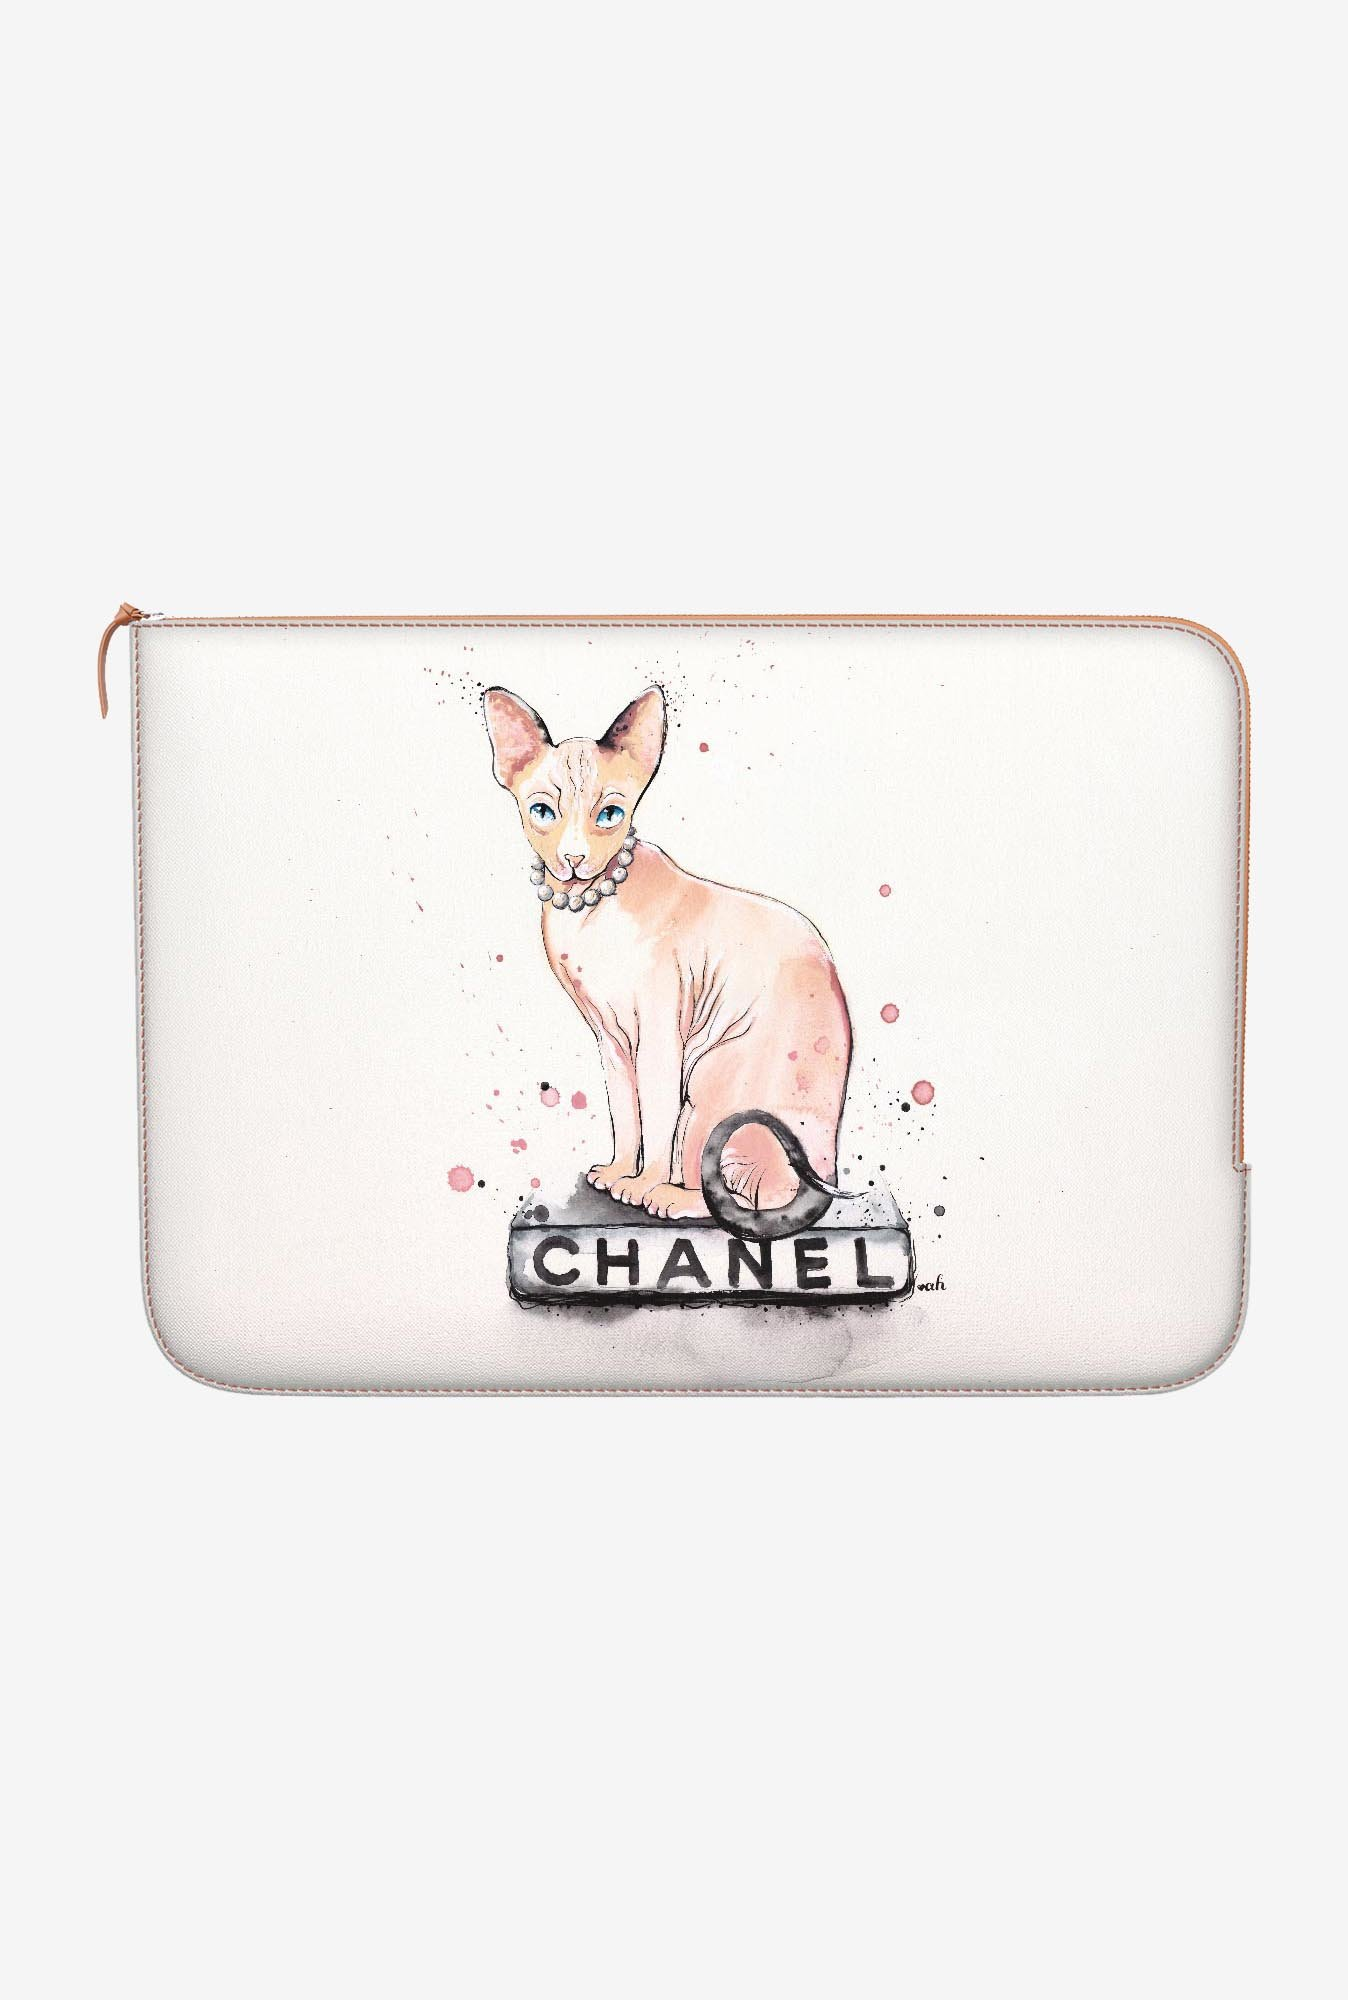 DailyObjects Call Me Coco MacBook 12 Zippered Sleeve